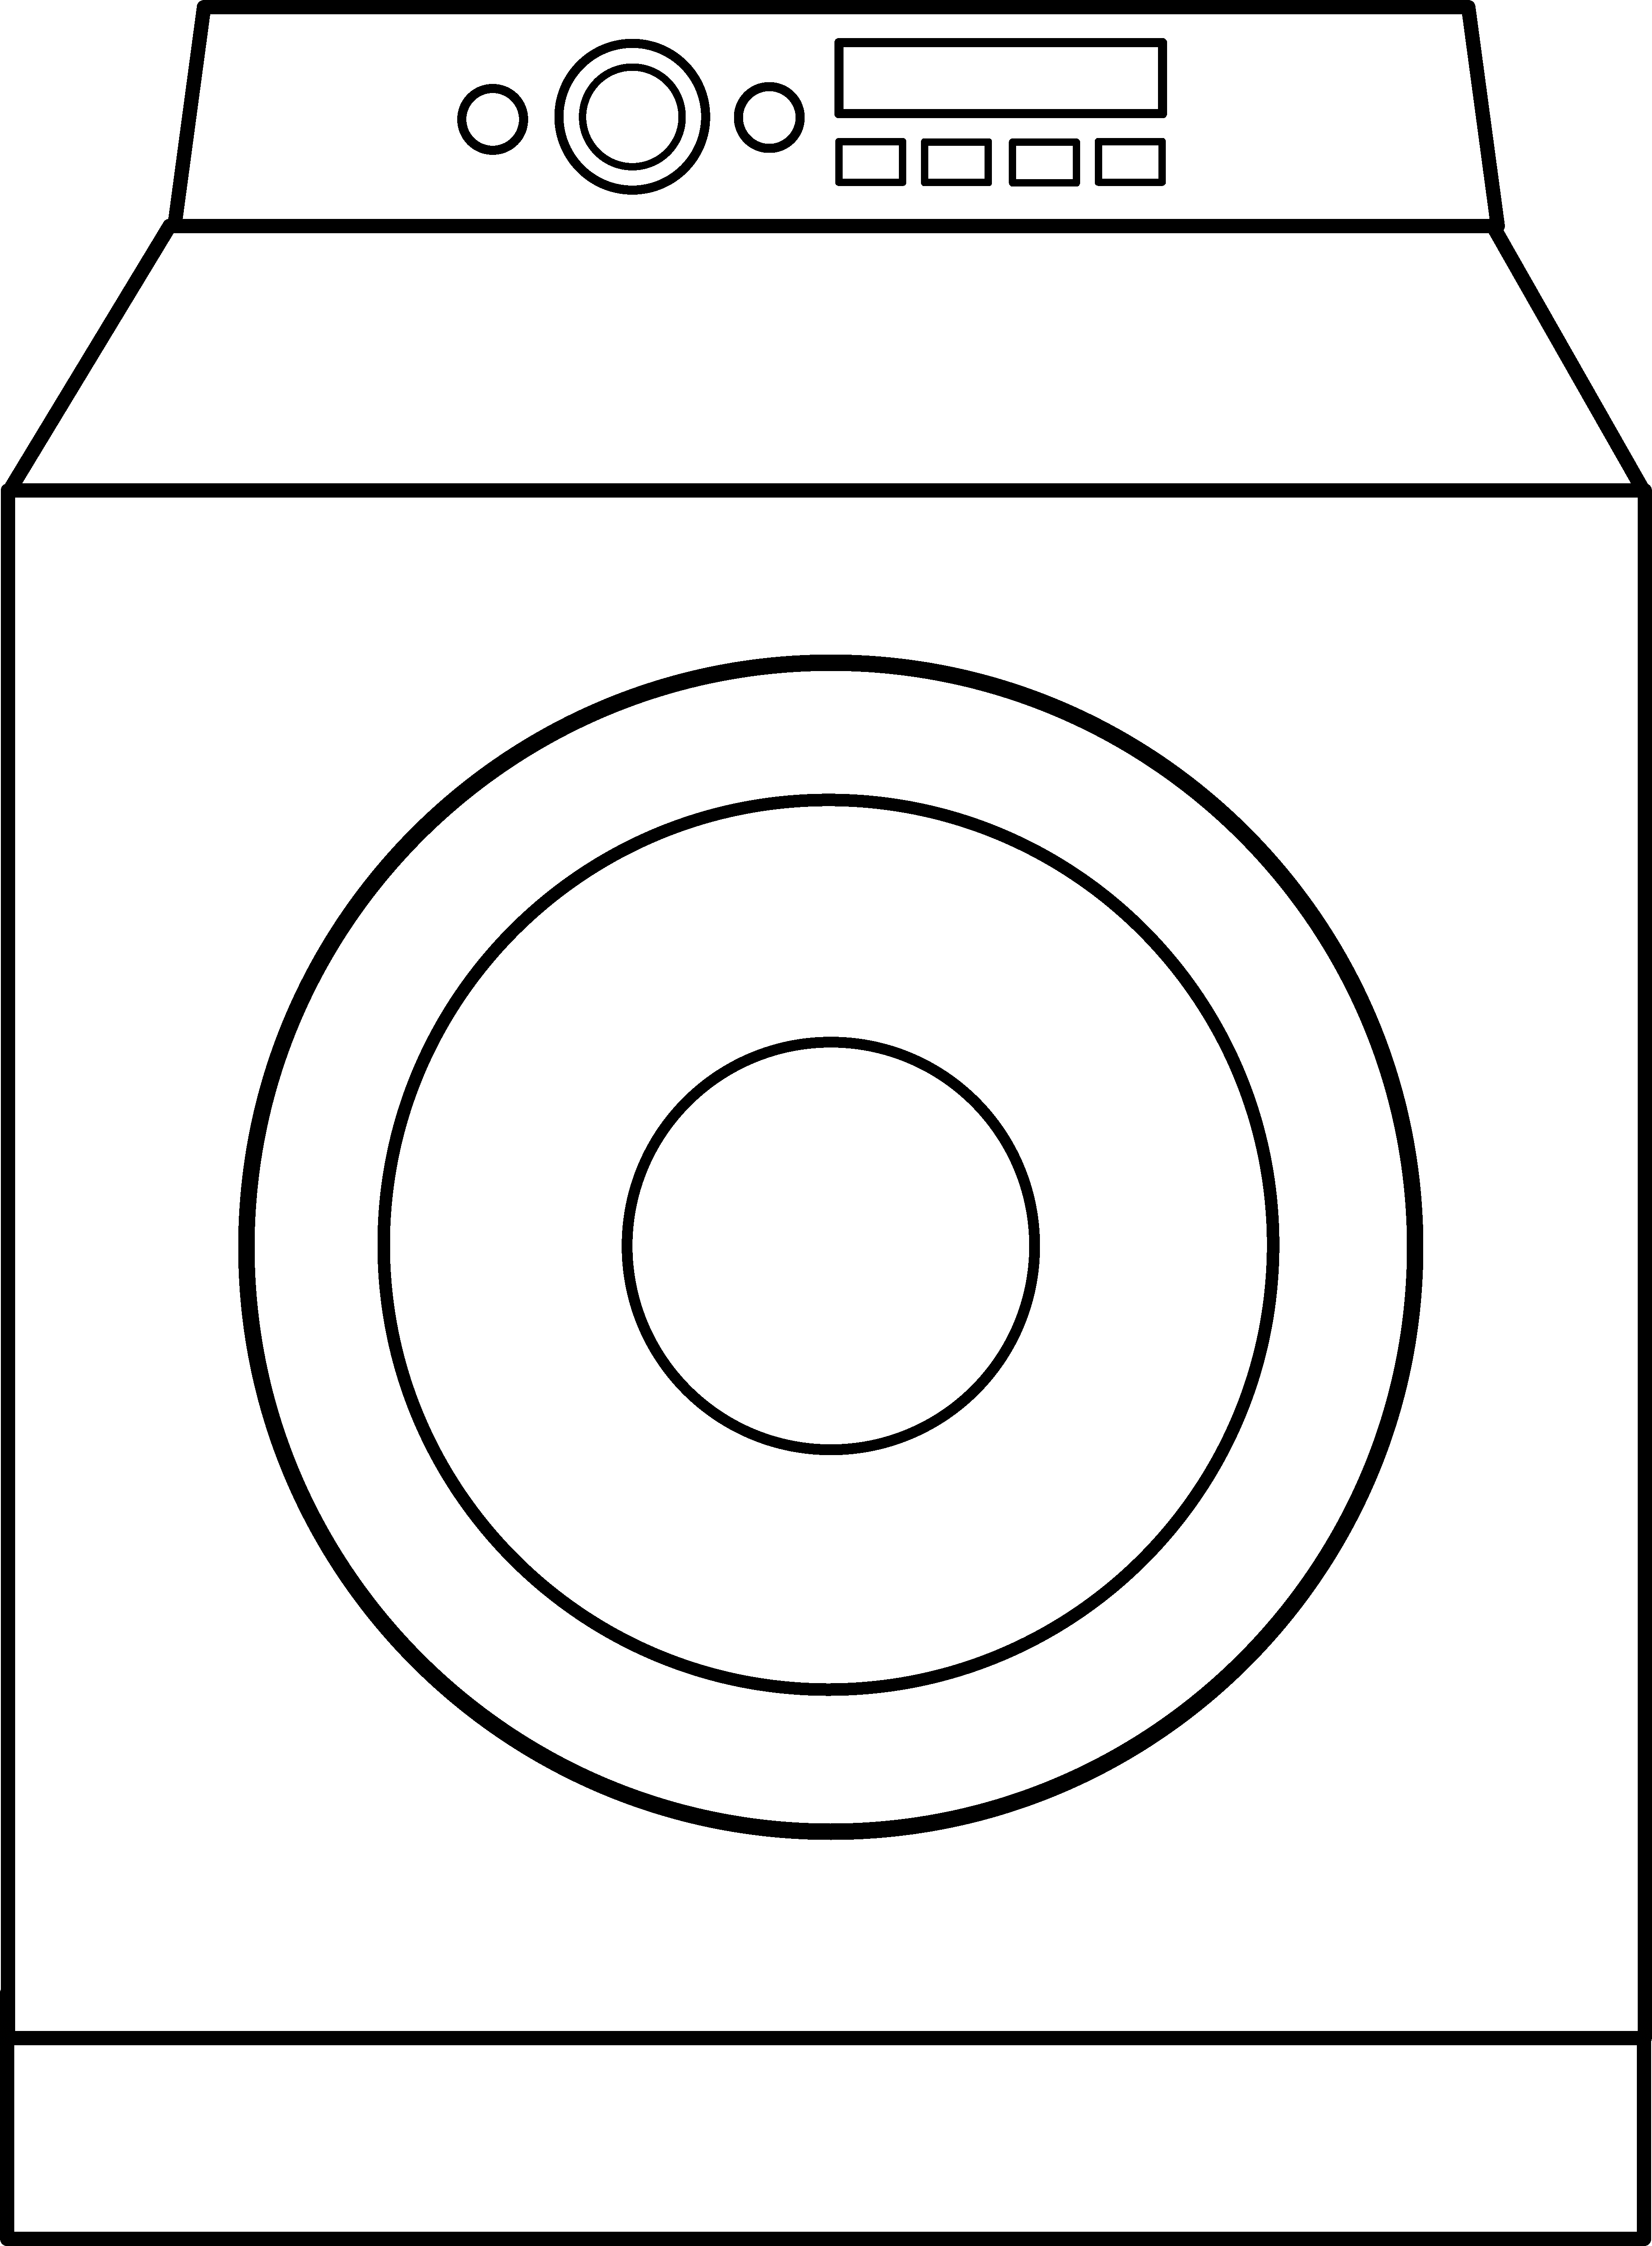 Washing machine clipart images svg black and white Washing Machine Line Art - Free Clip Art svg black and white